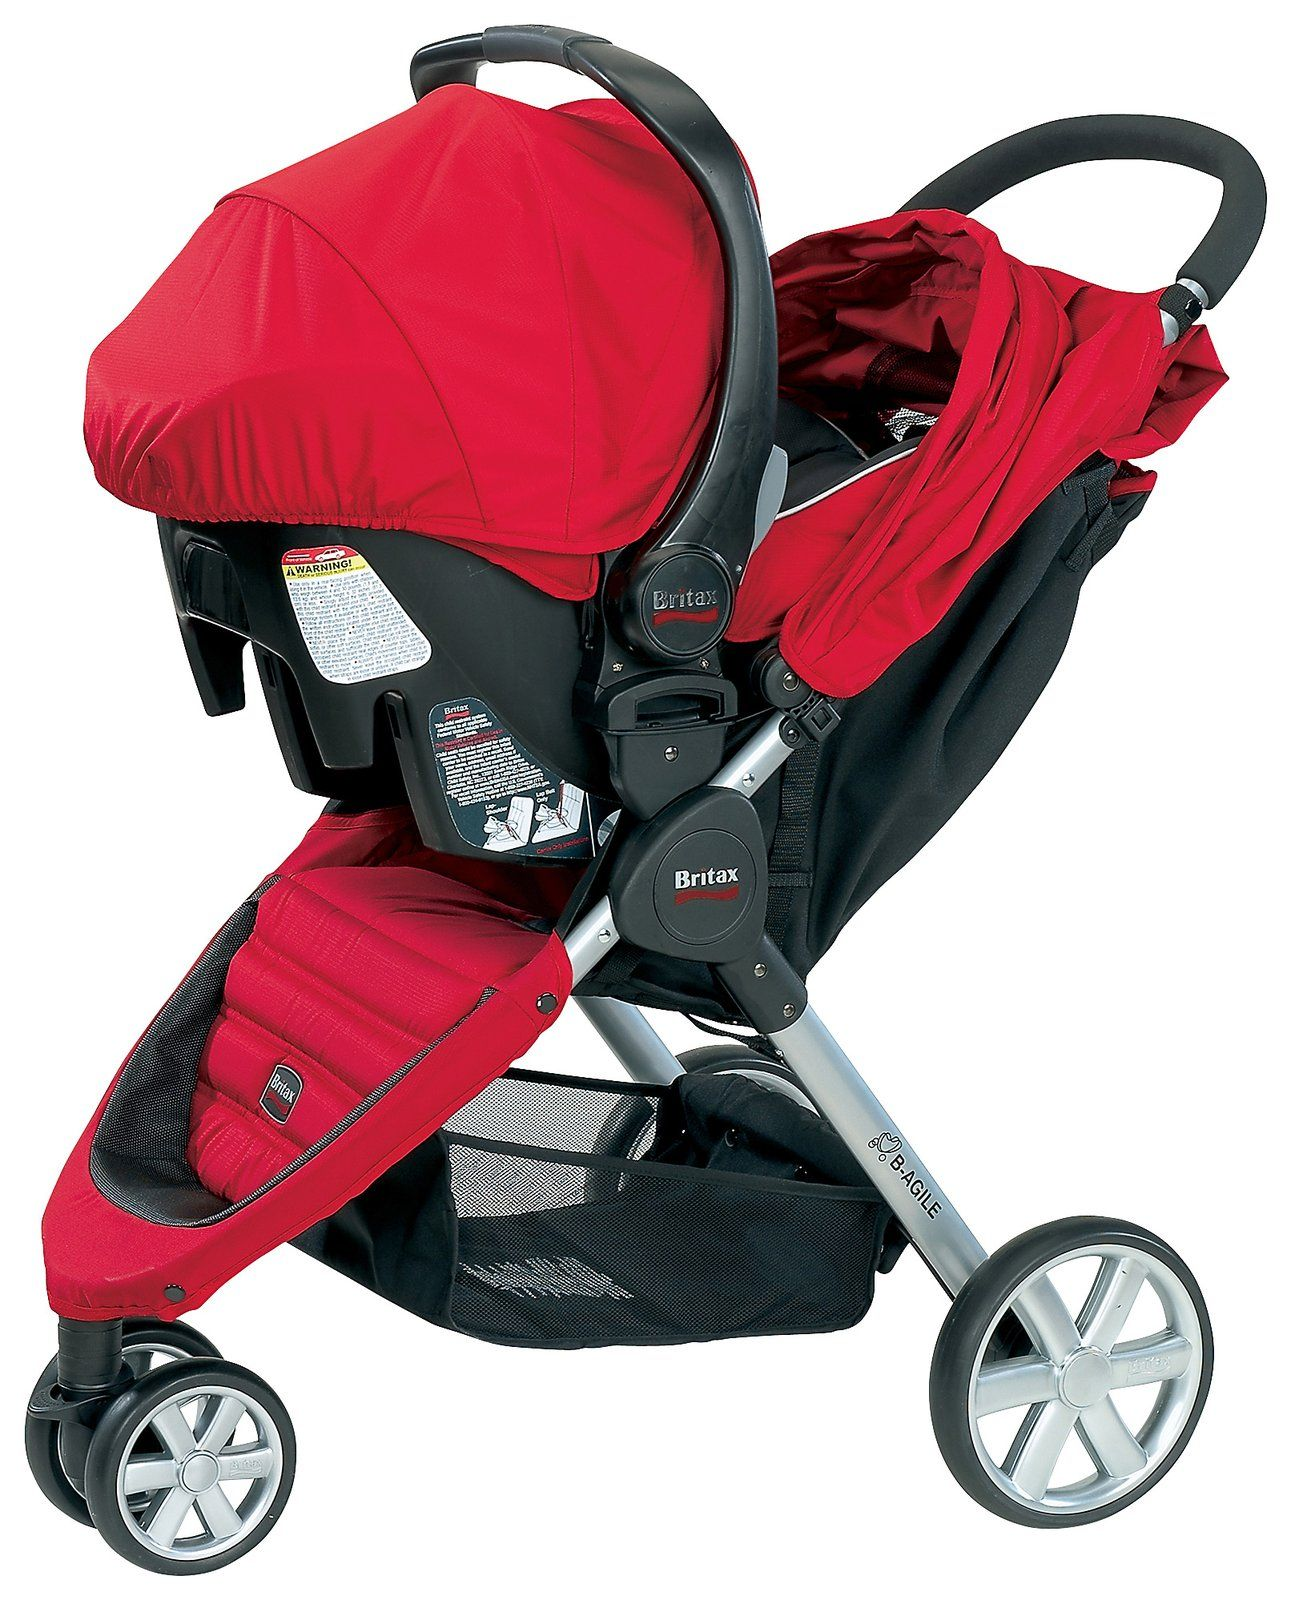 The Britax Bsafe Infant Car Seat Is Travel System